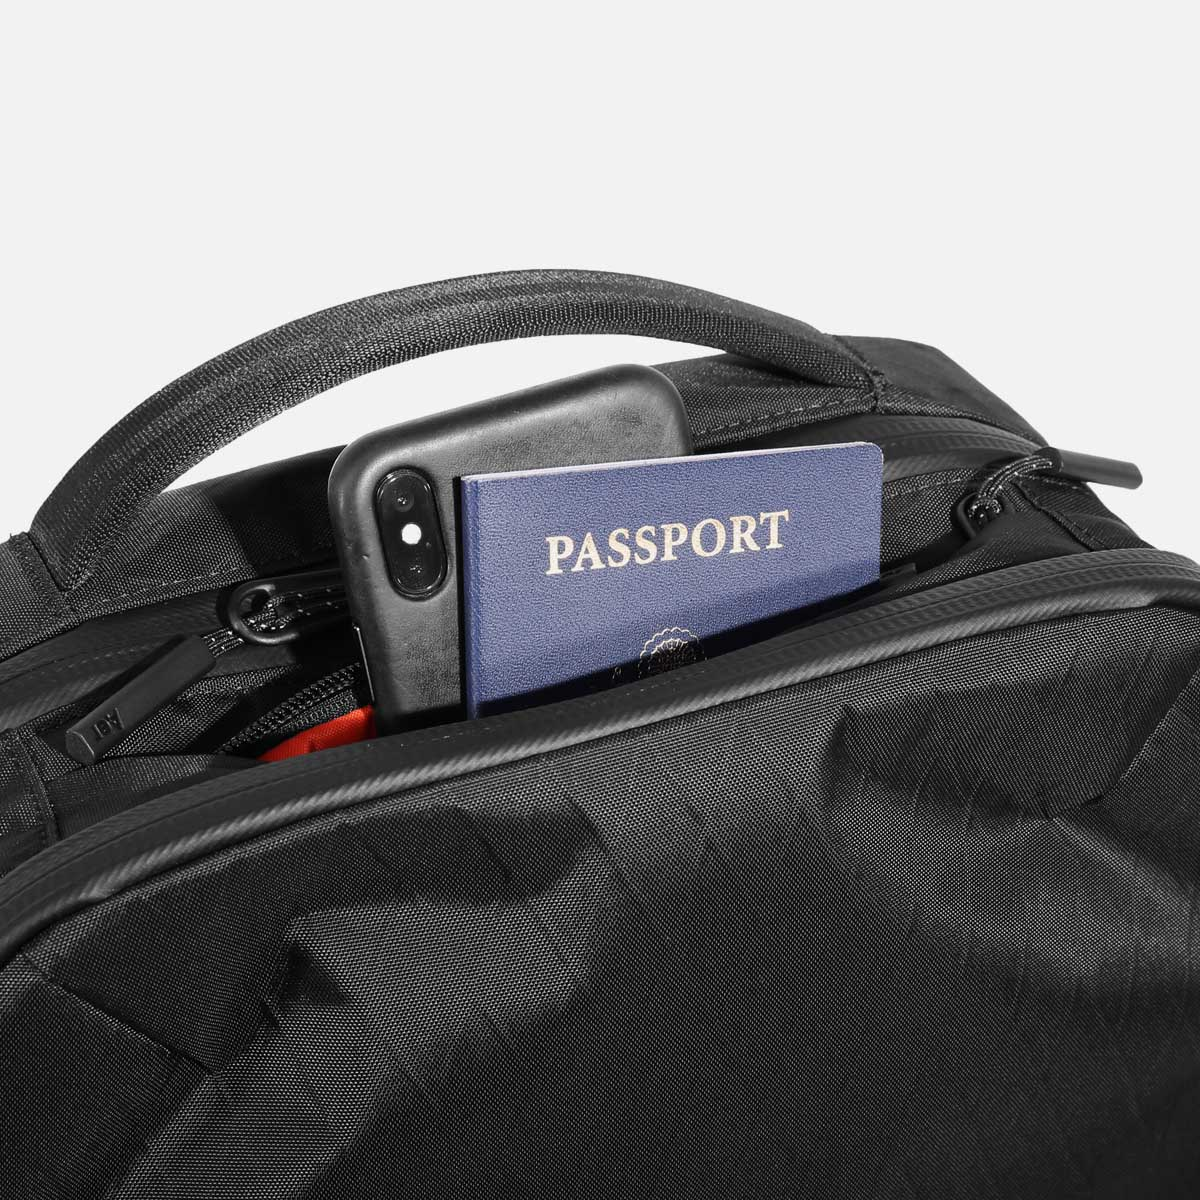 Quick access top pocket for travel documents.